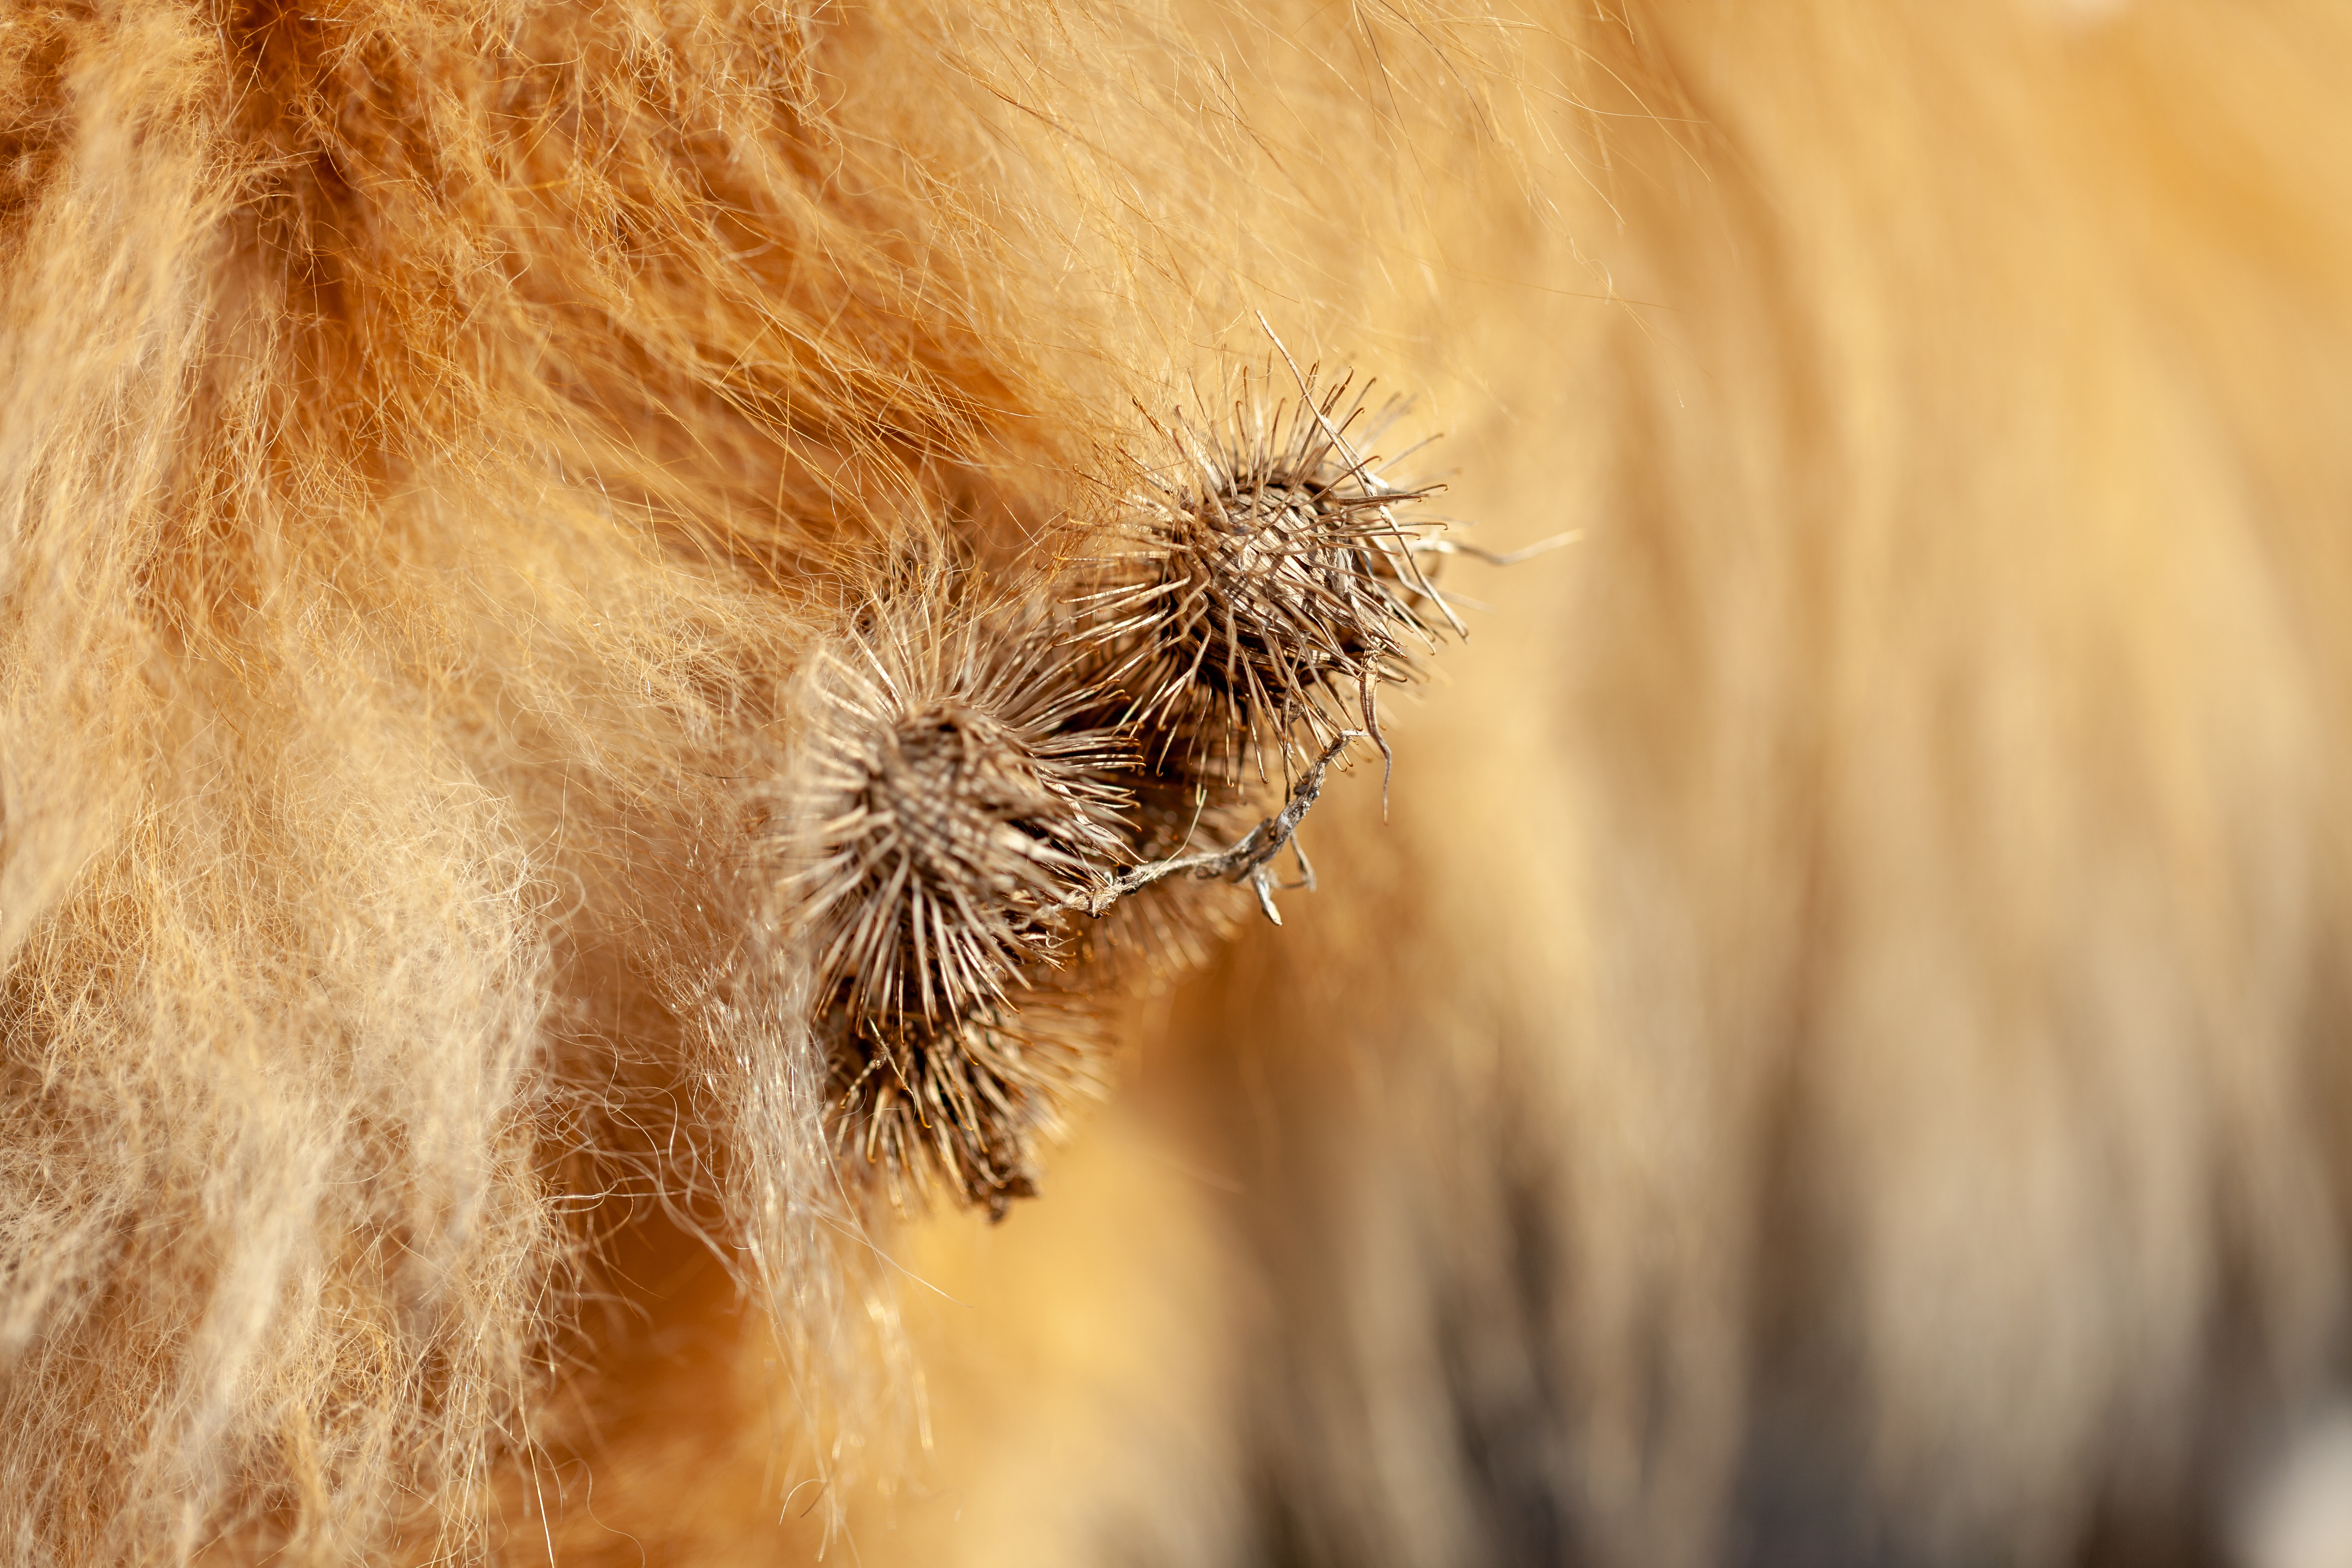 Burrs tangled in dog fur.